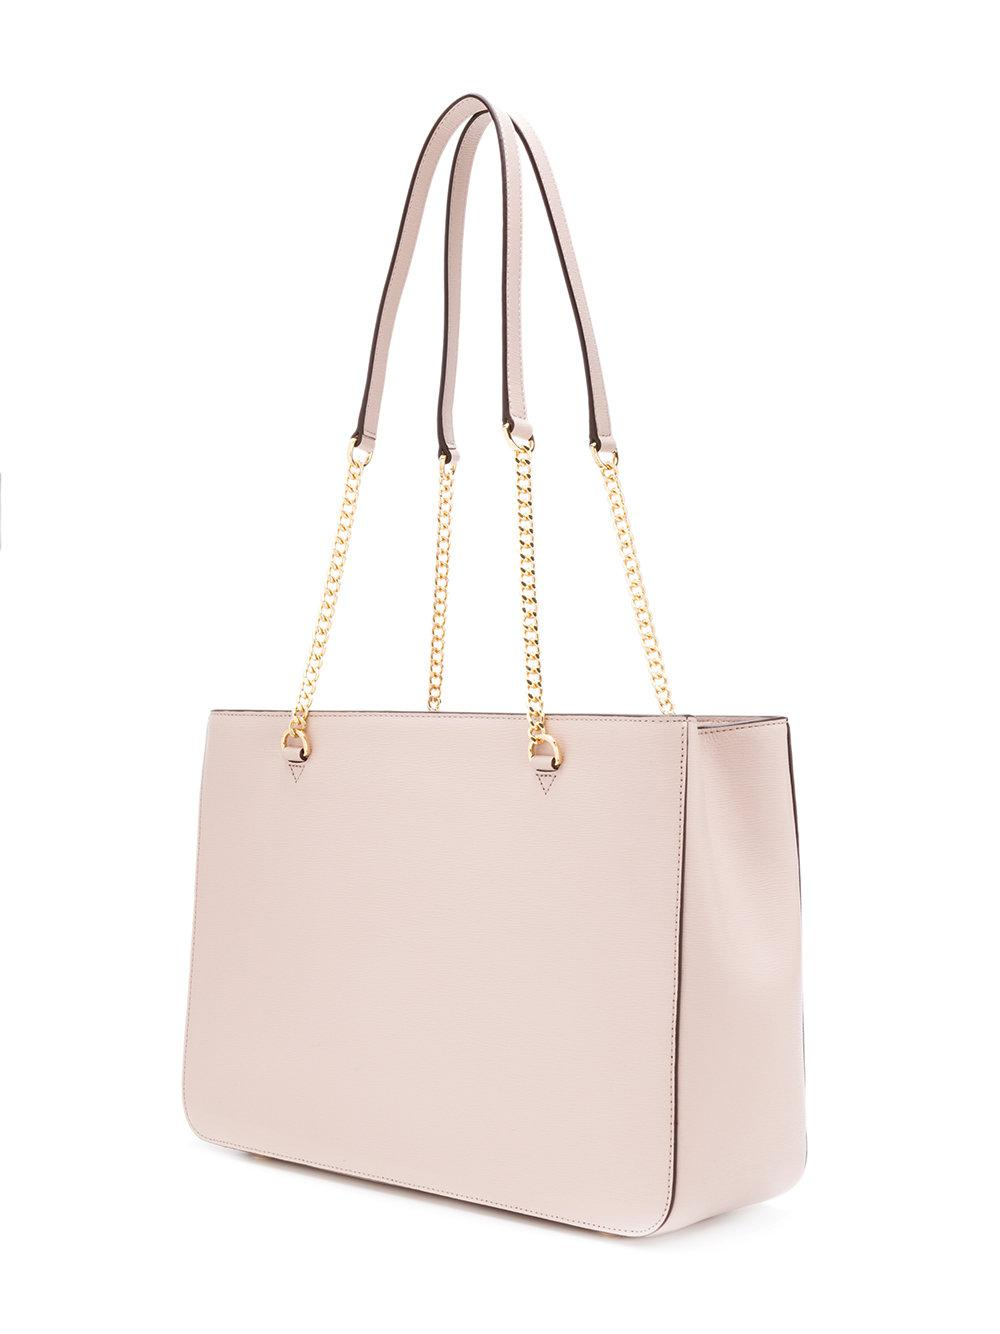 Choice classic shopper tote - Nude & Neutrals DKNY Discount With Credit Card Sale Best Store To Get Pre Order Free Shipping Hot Sale oE2WA